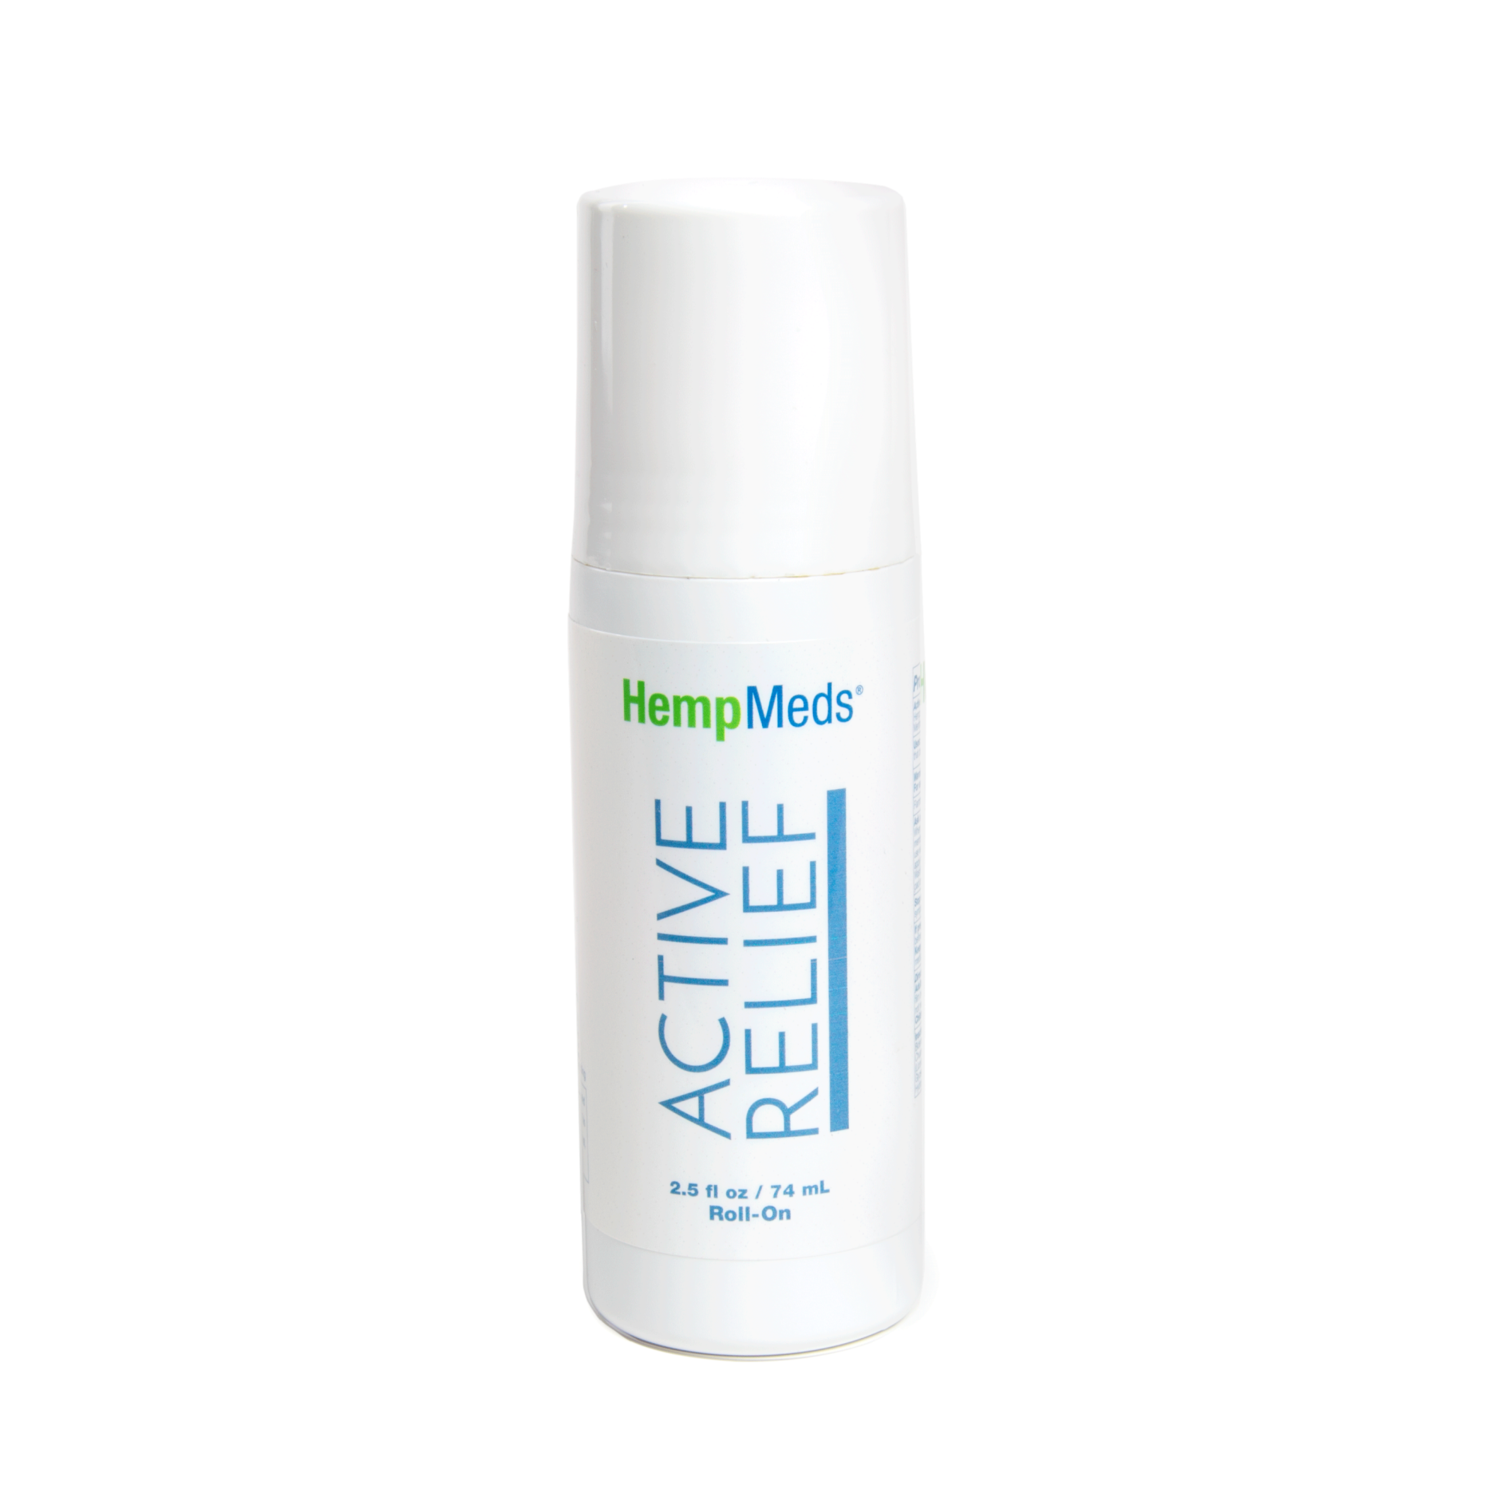 Active Relief Roll-On   Fast-Acting Relief   10 mg Hemp Extract   CBD   Stiffness  